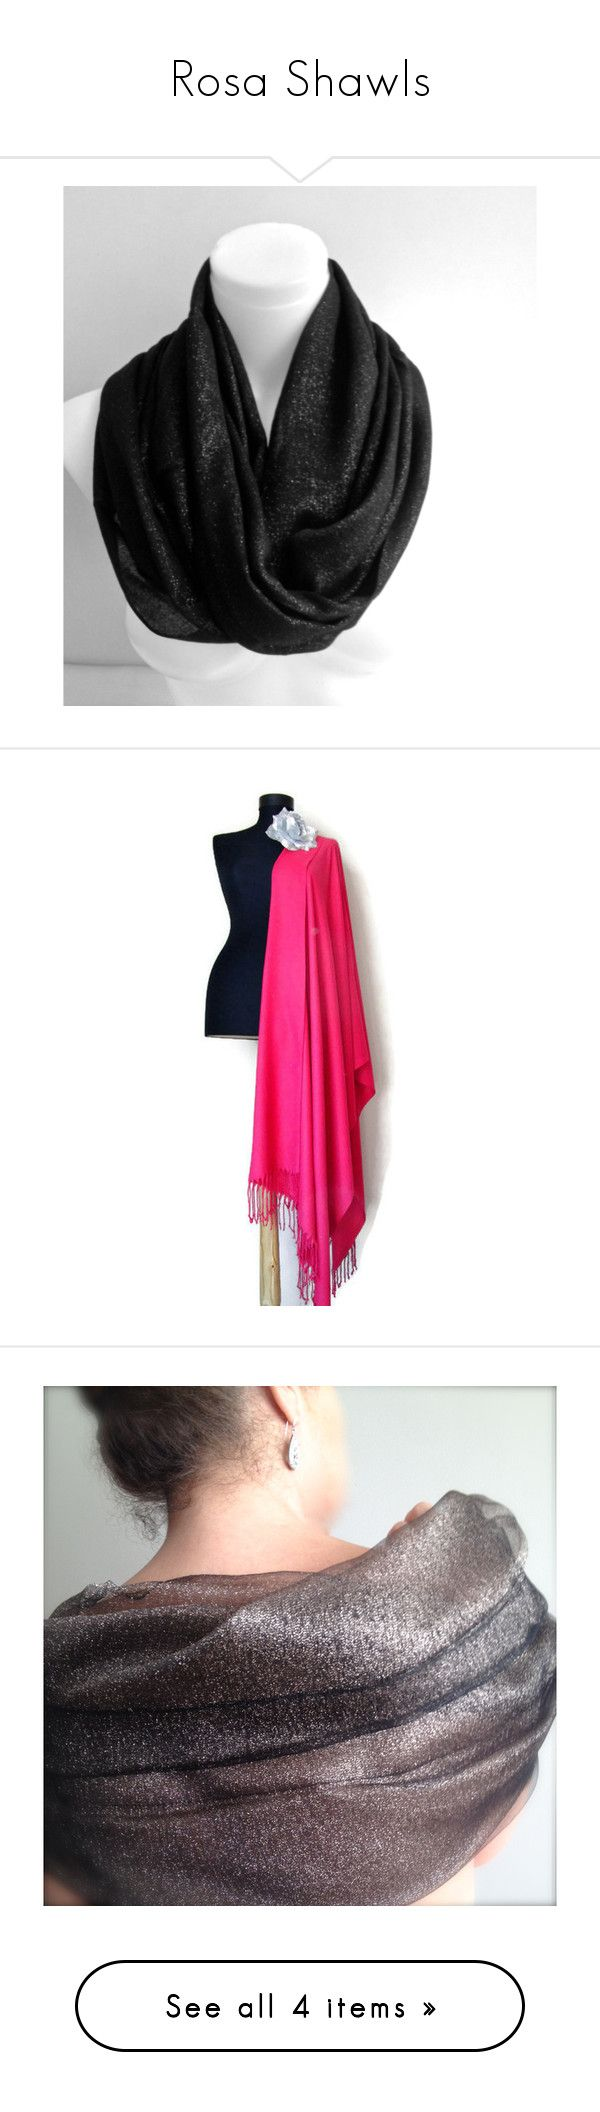 """""""Rosa Shawls"""" by funnfiber ❤ liked on Polyvore featuring accessories, scarves, holiday scarves, shawl scarves, metallic scarves, wrap scarves, wrap shawl, rosashawls, hot pink scarves and lightweight shawl"""